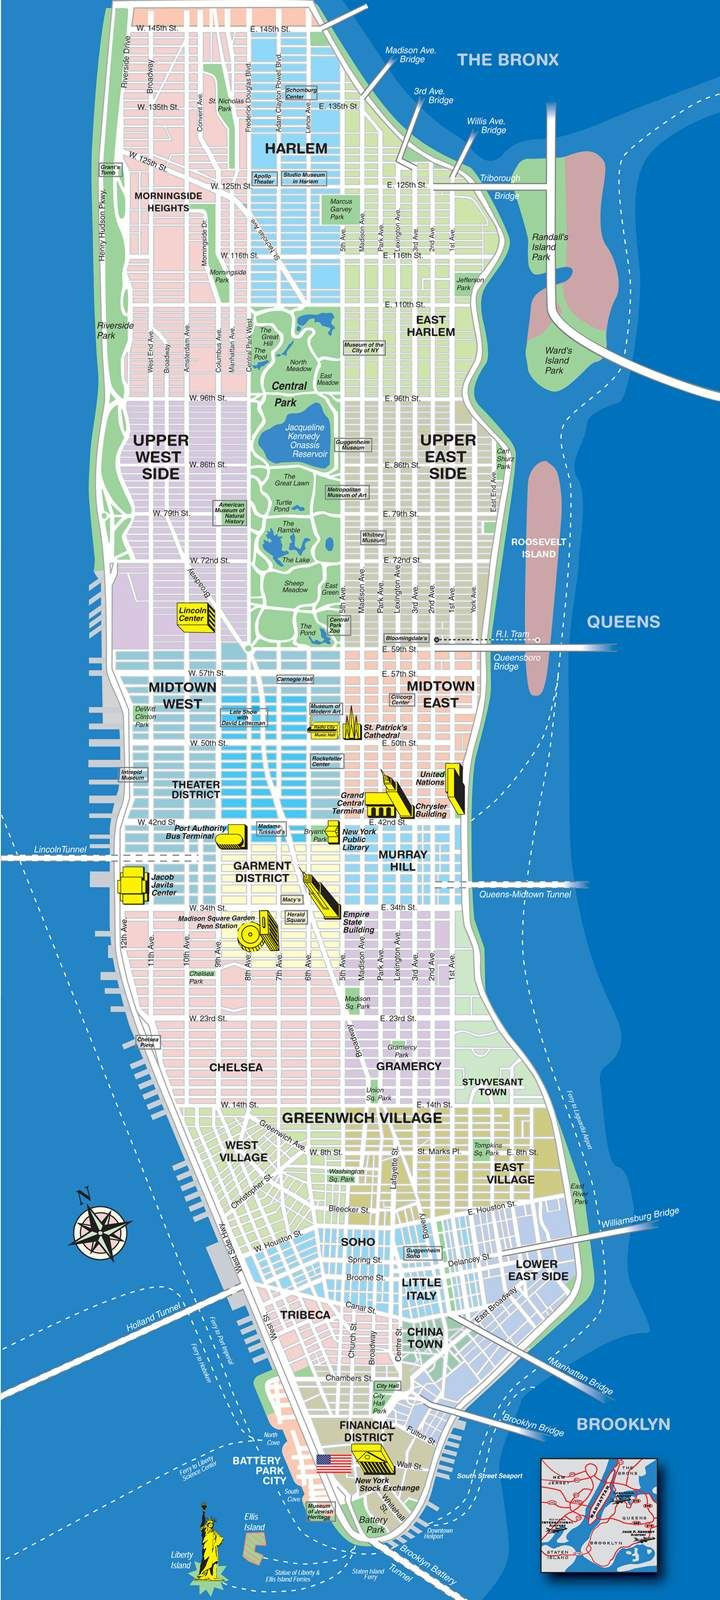 High resolution map of Manhattan for print or